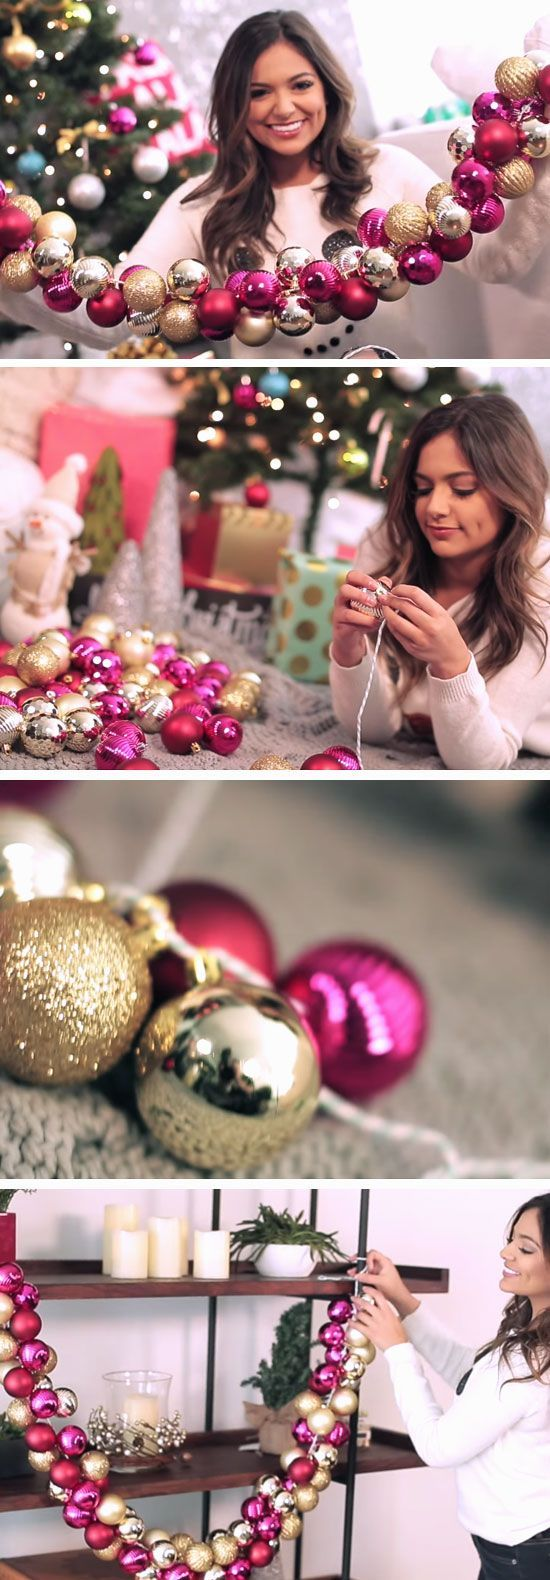 Awesome 20 Office Christmas Decorating Ideas https://decoratoo.com/2017/10/13/20-office-christmas-decorating-ideas/ Decorating for the holidays is among the joys of the season and shouldn't be limited to home. All Christmas